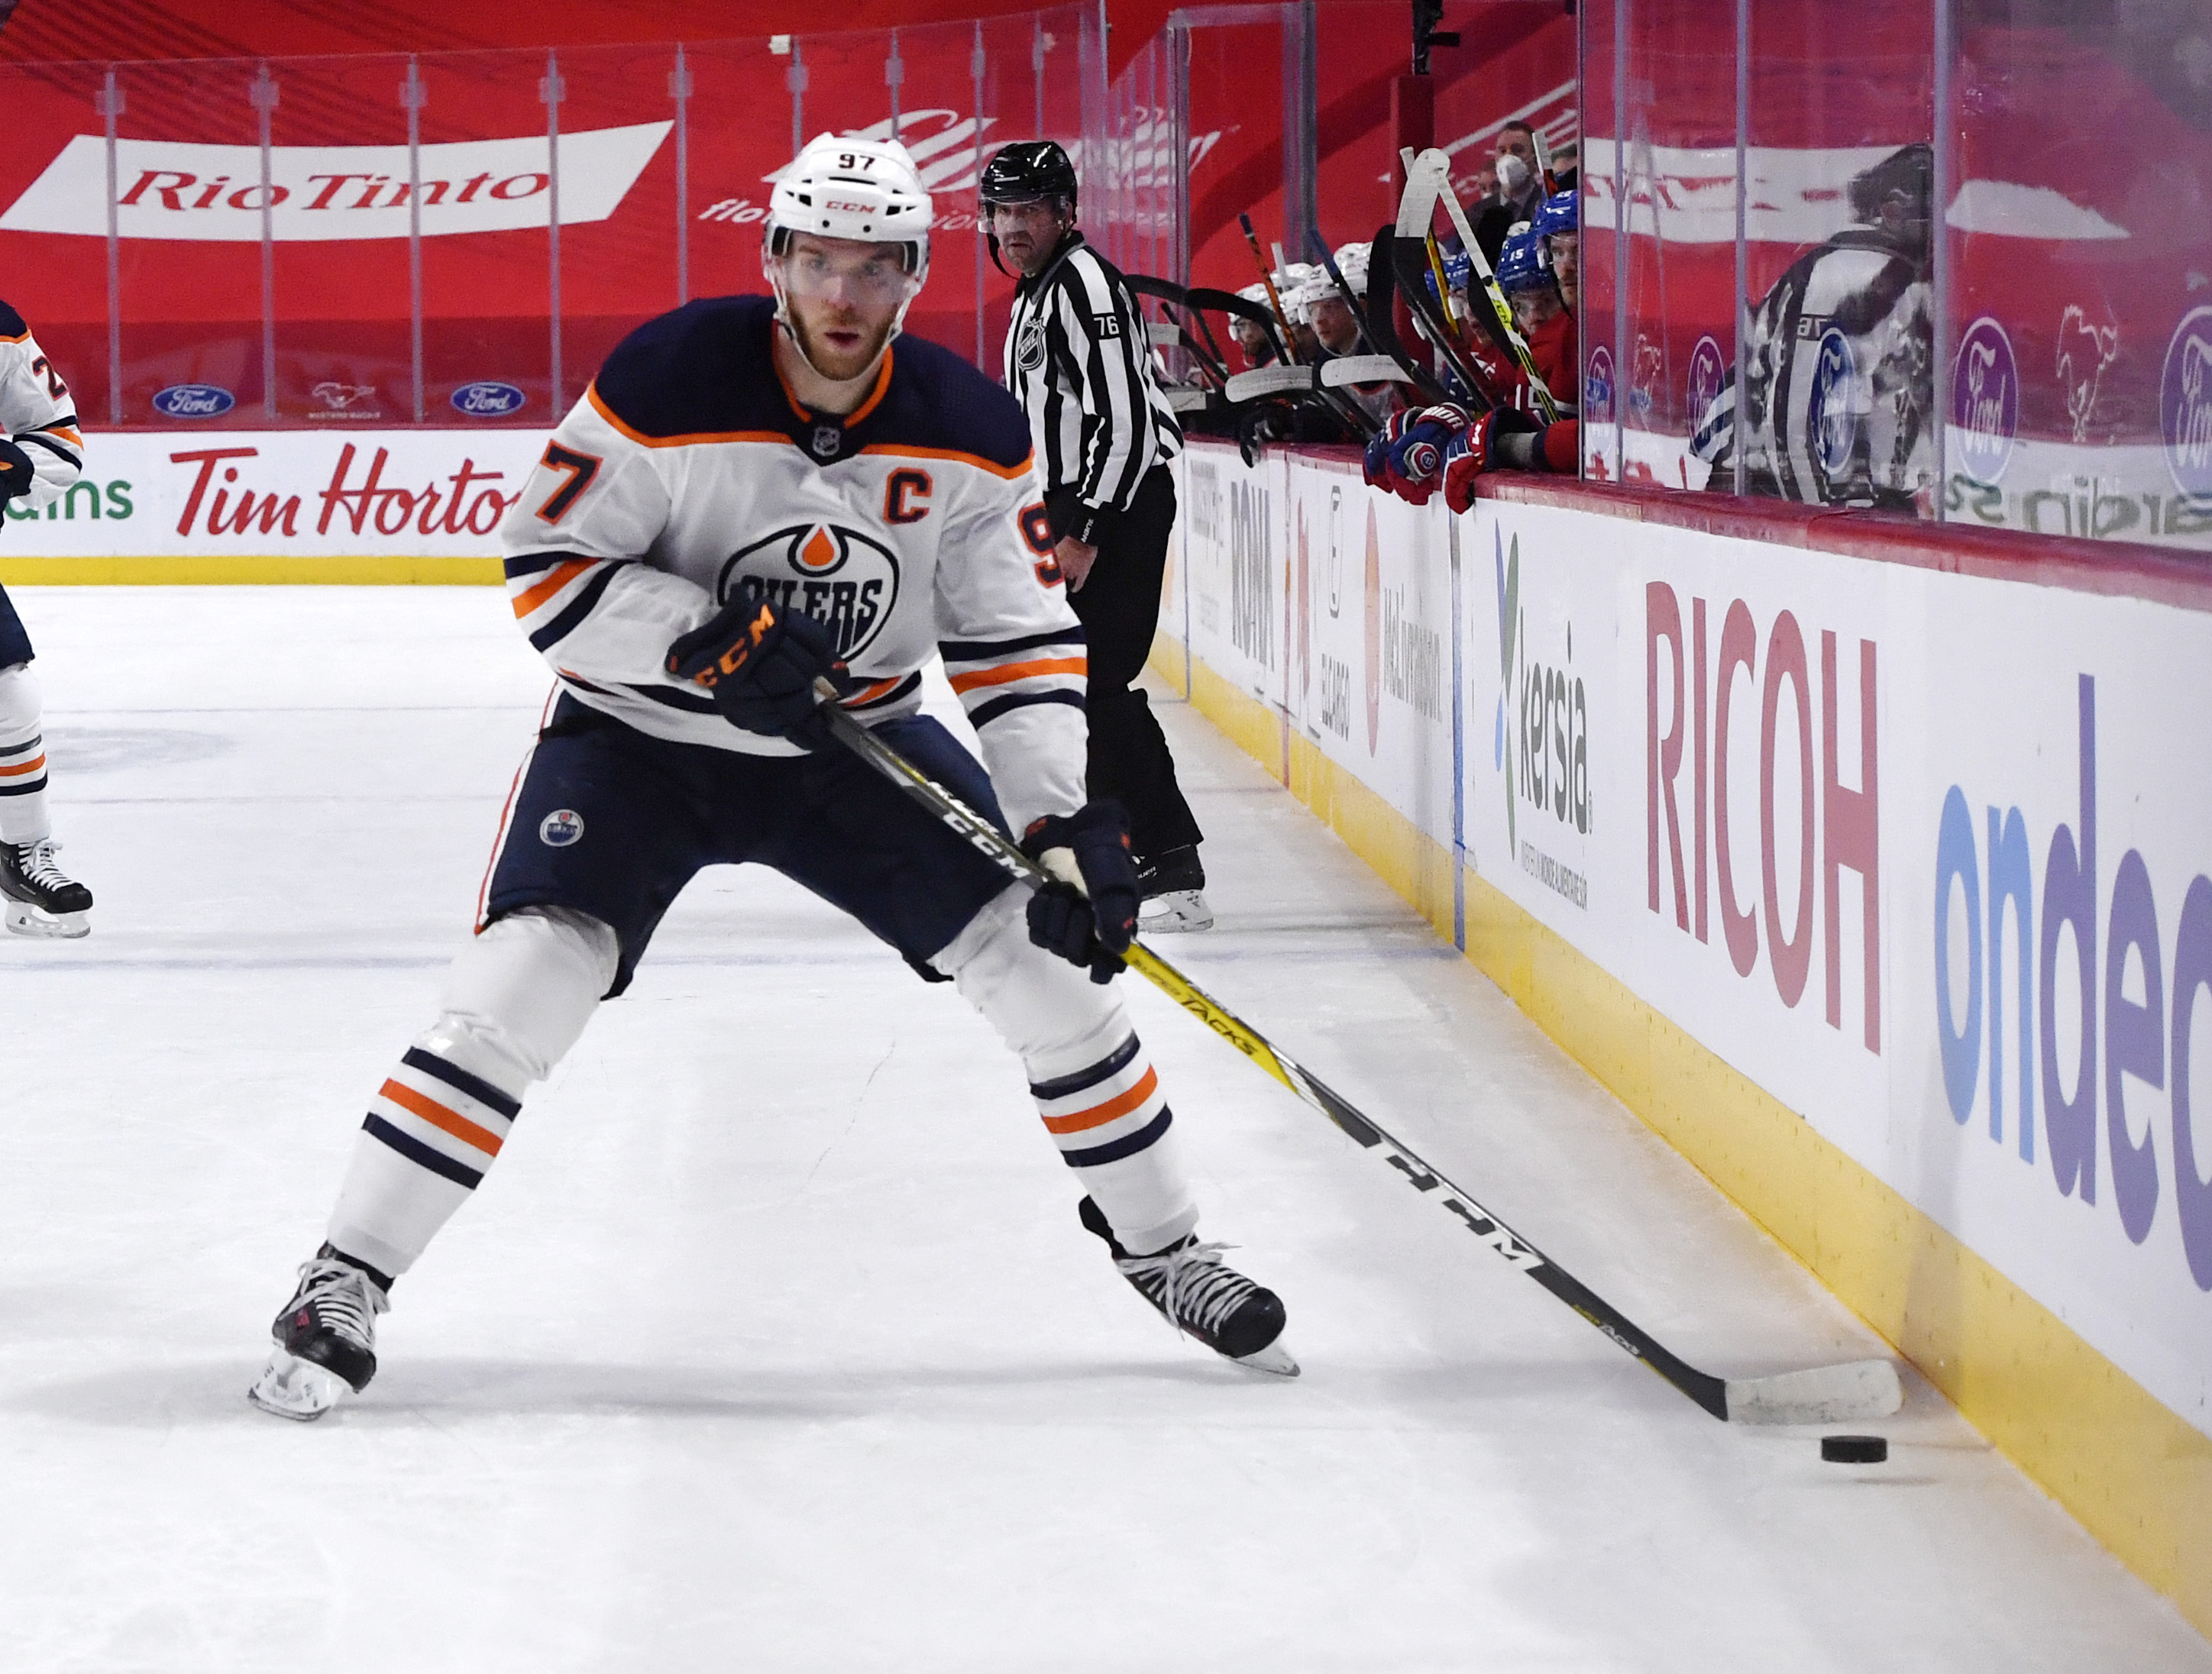 May 10, 2021; Montreal, Quebec, CAN; Edmonton Oilers forward Connor McDavid (97) plays the puck during the first period of the game against the Montreal Canadiens at the Bell Centre. Mandatory Credit: Eric Bolte-USA TODAY Sports